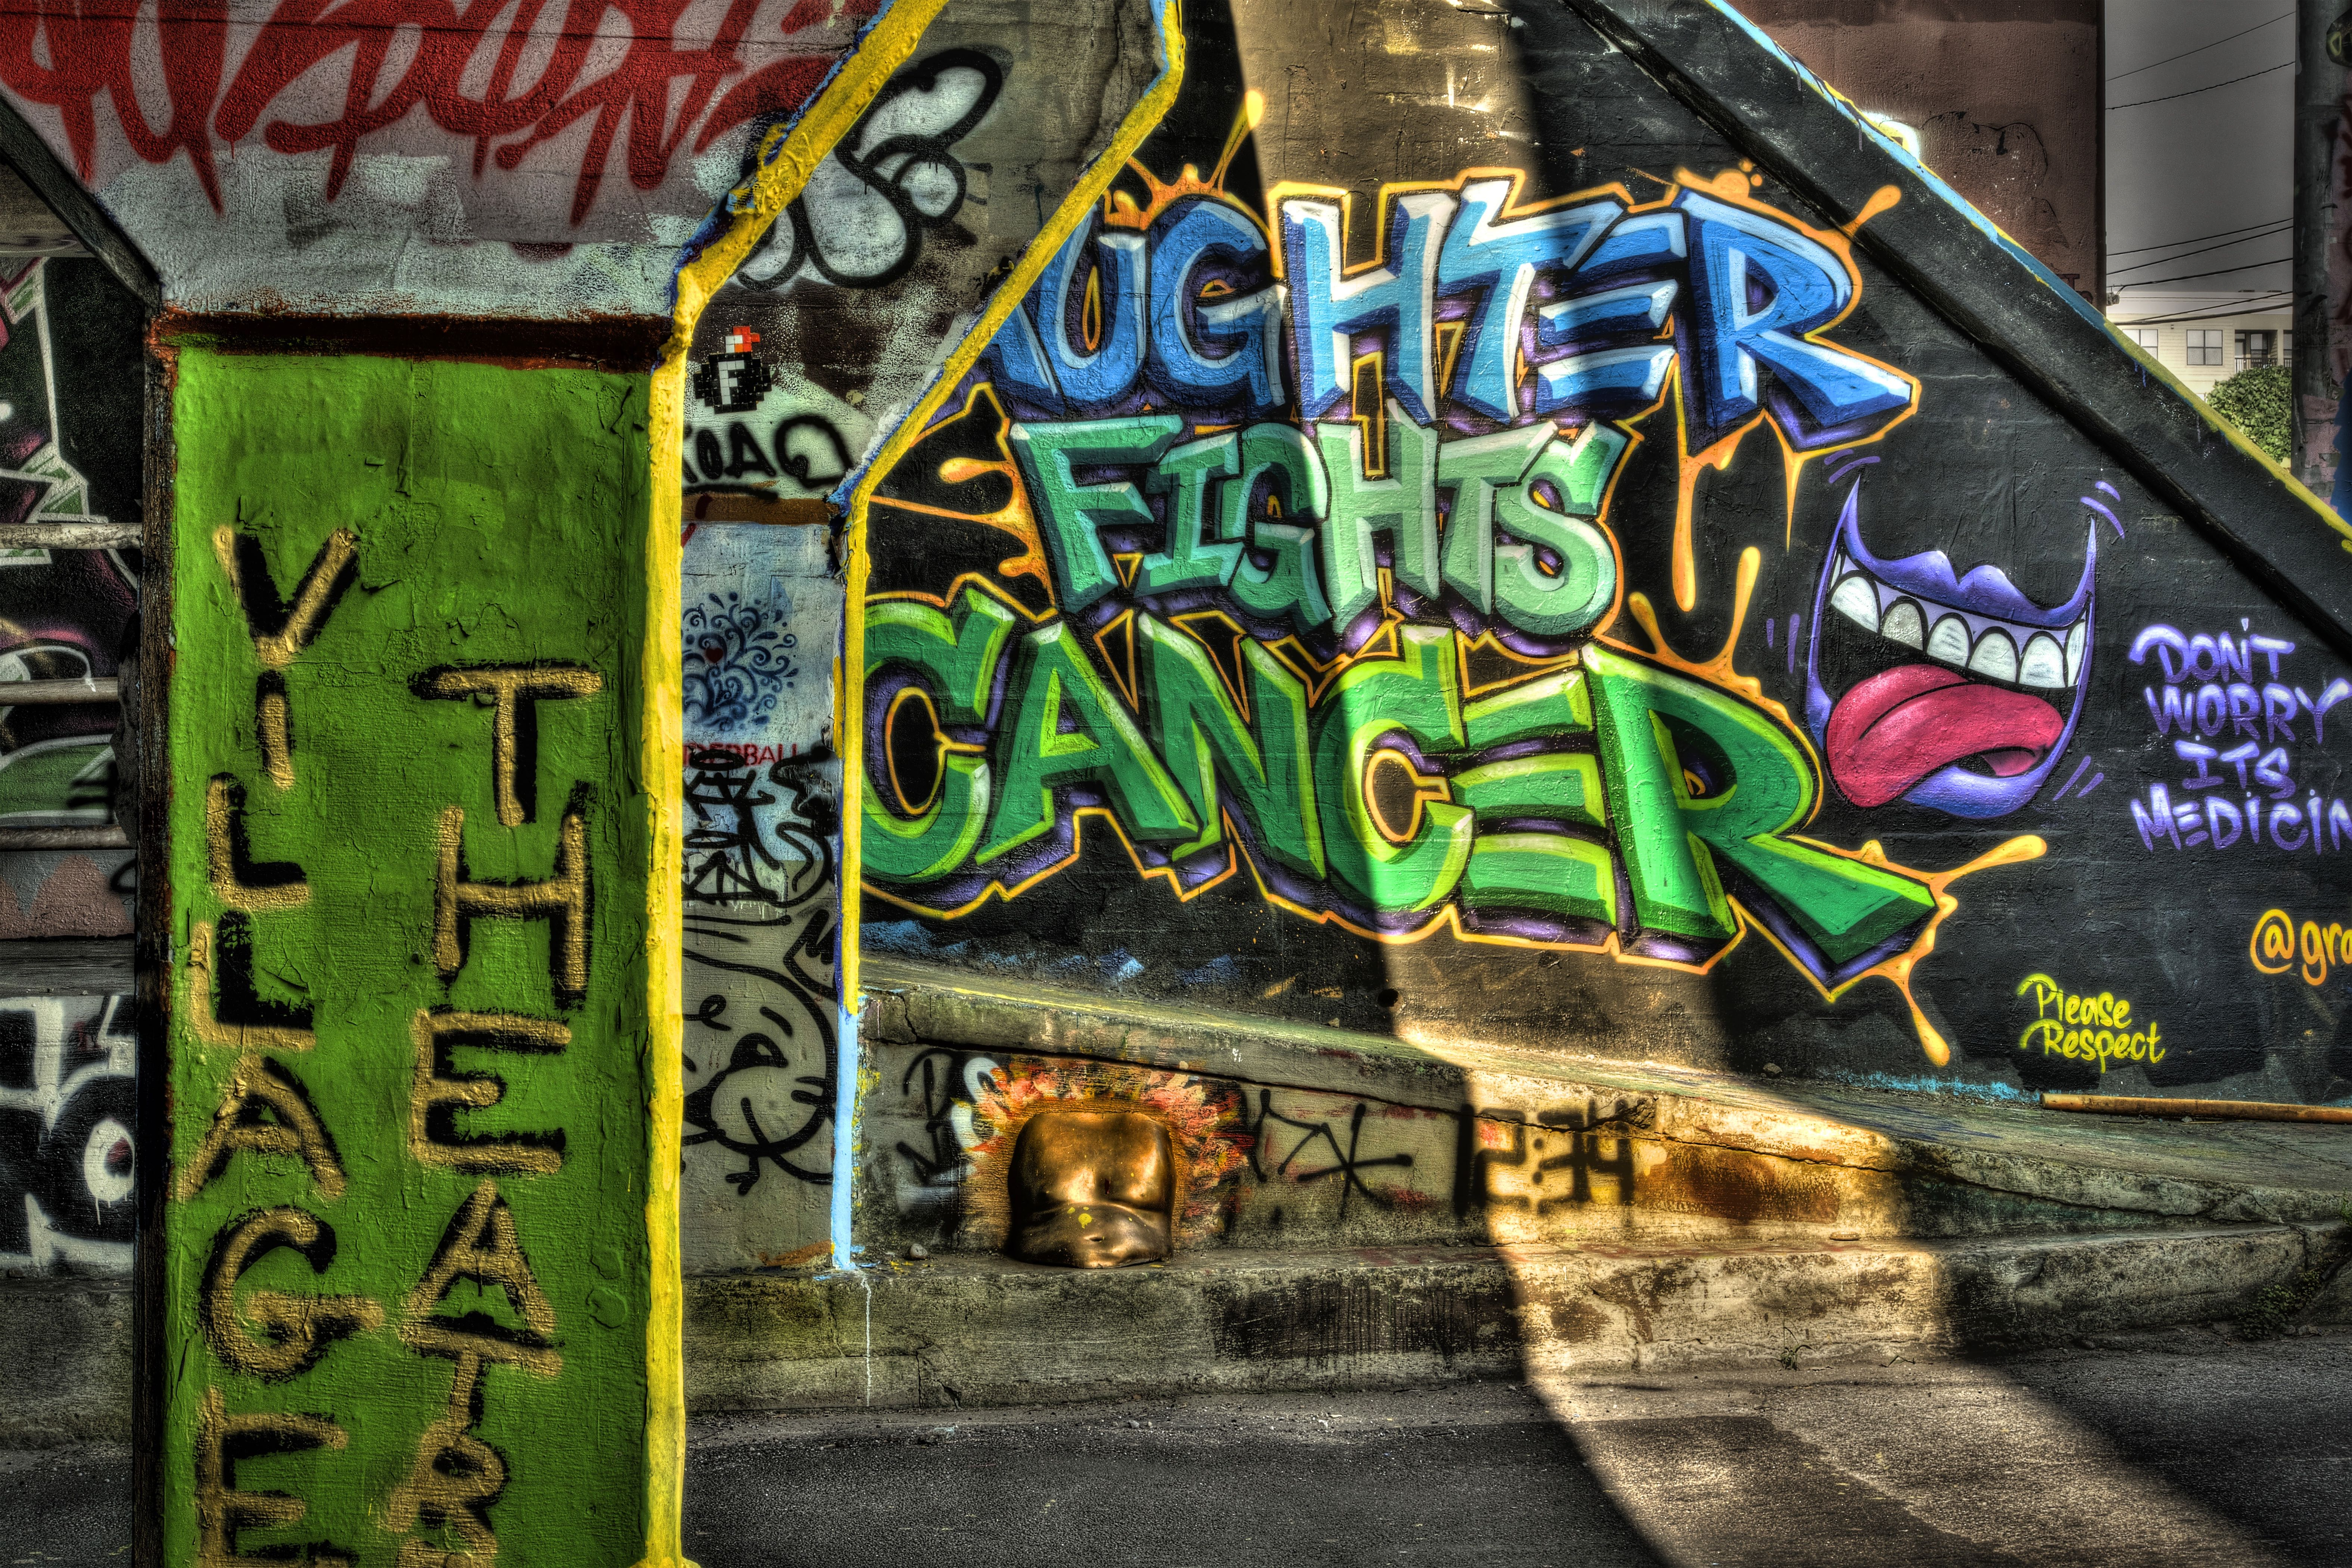 'Laughter Fights Cancer' Graffiti